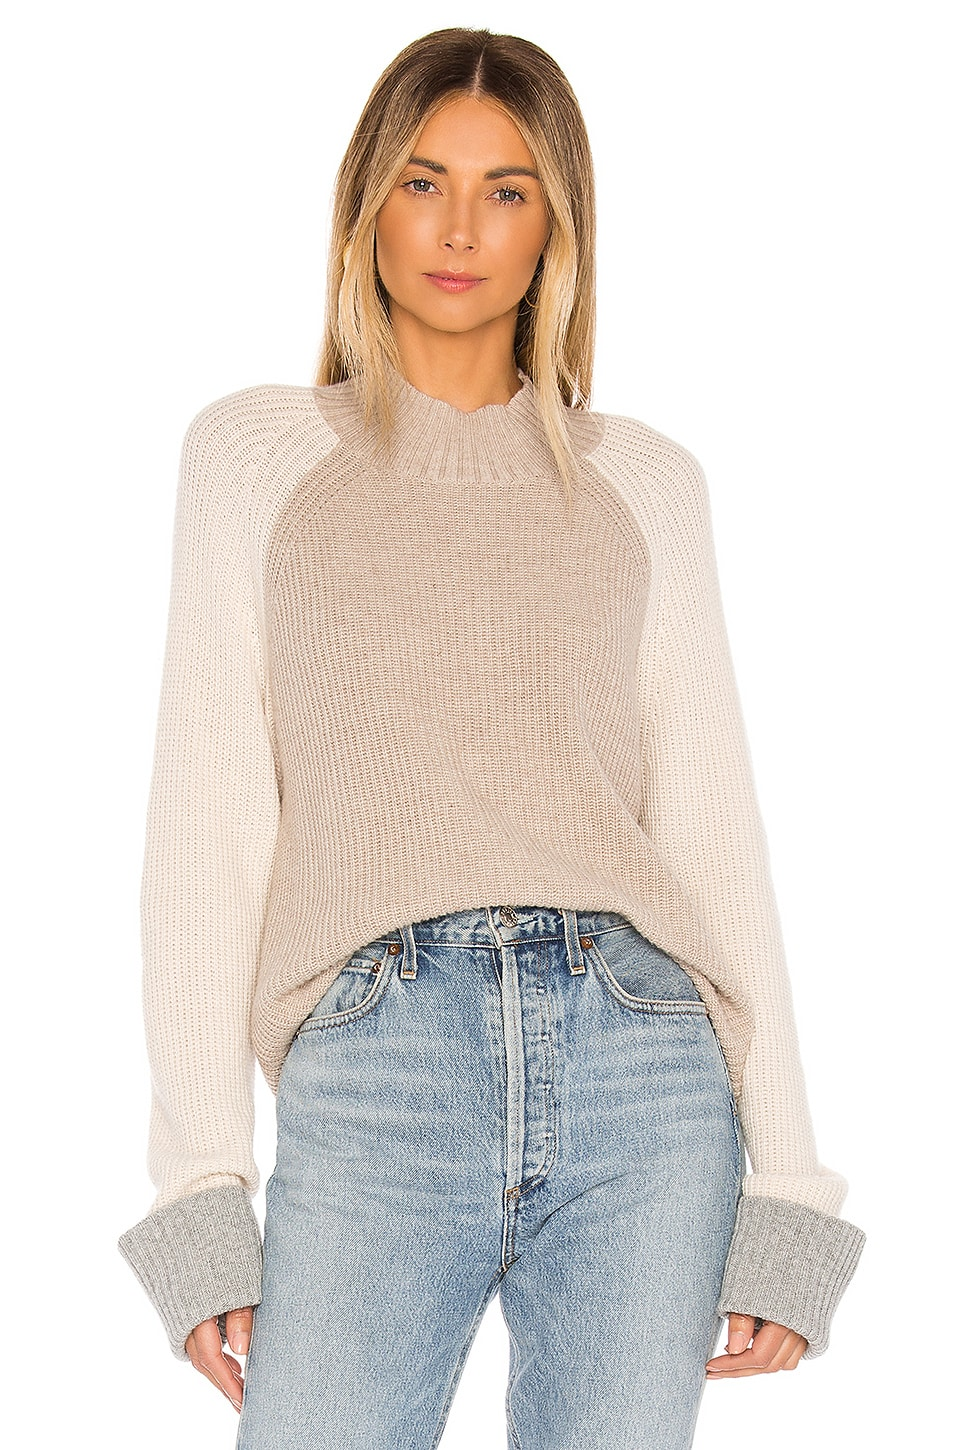 Splendid Alta Color Block Cashmere Blend Sweater in Heather Toast, Natural & Light Heather Grey